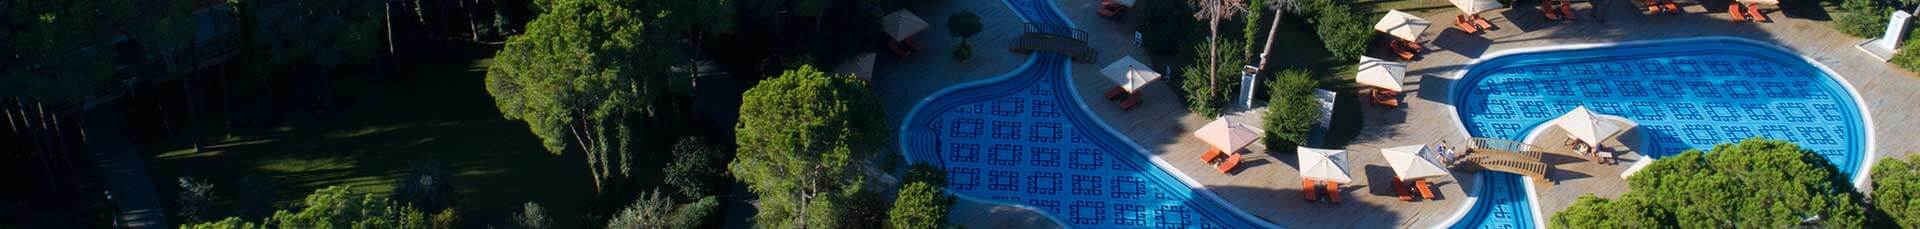 Ali Bey Resort Sorgun - Havuzlar-ru